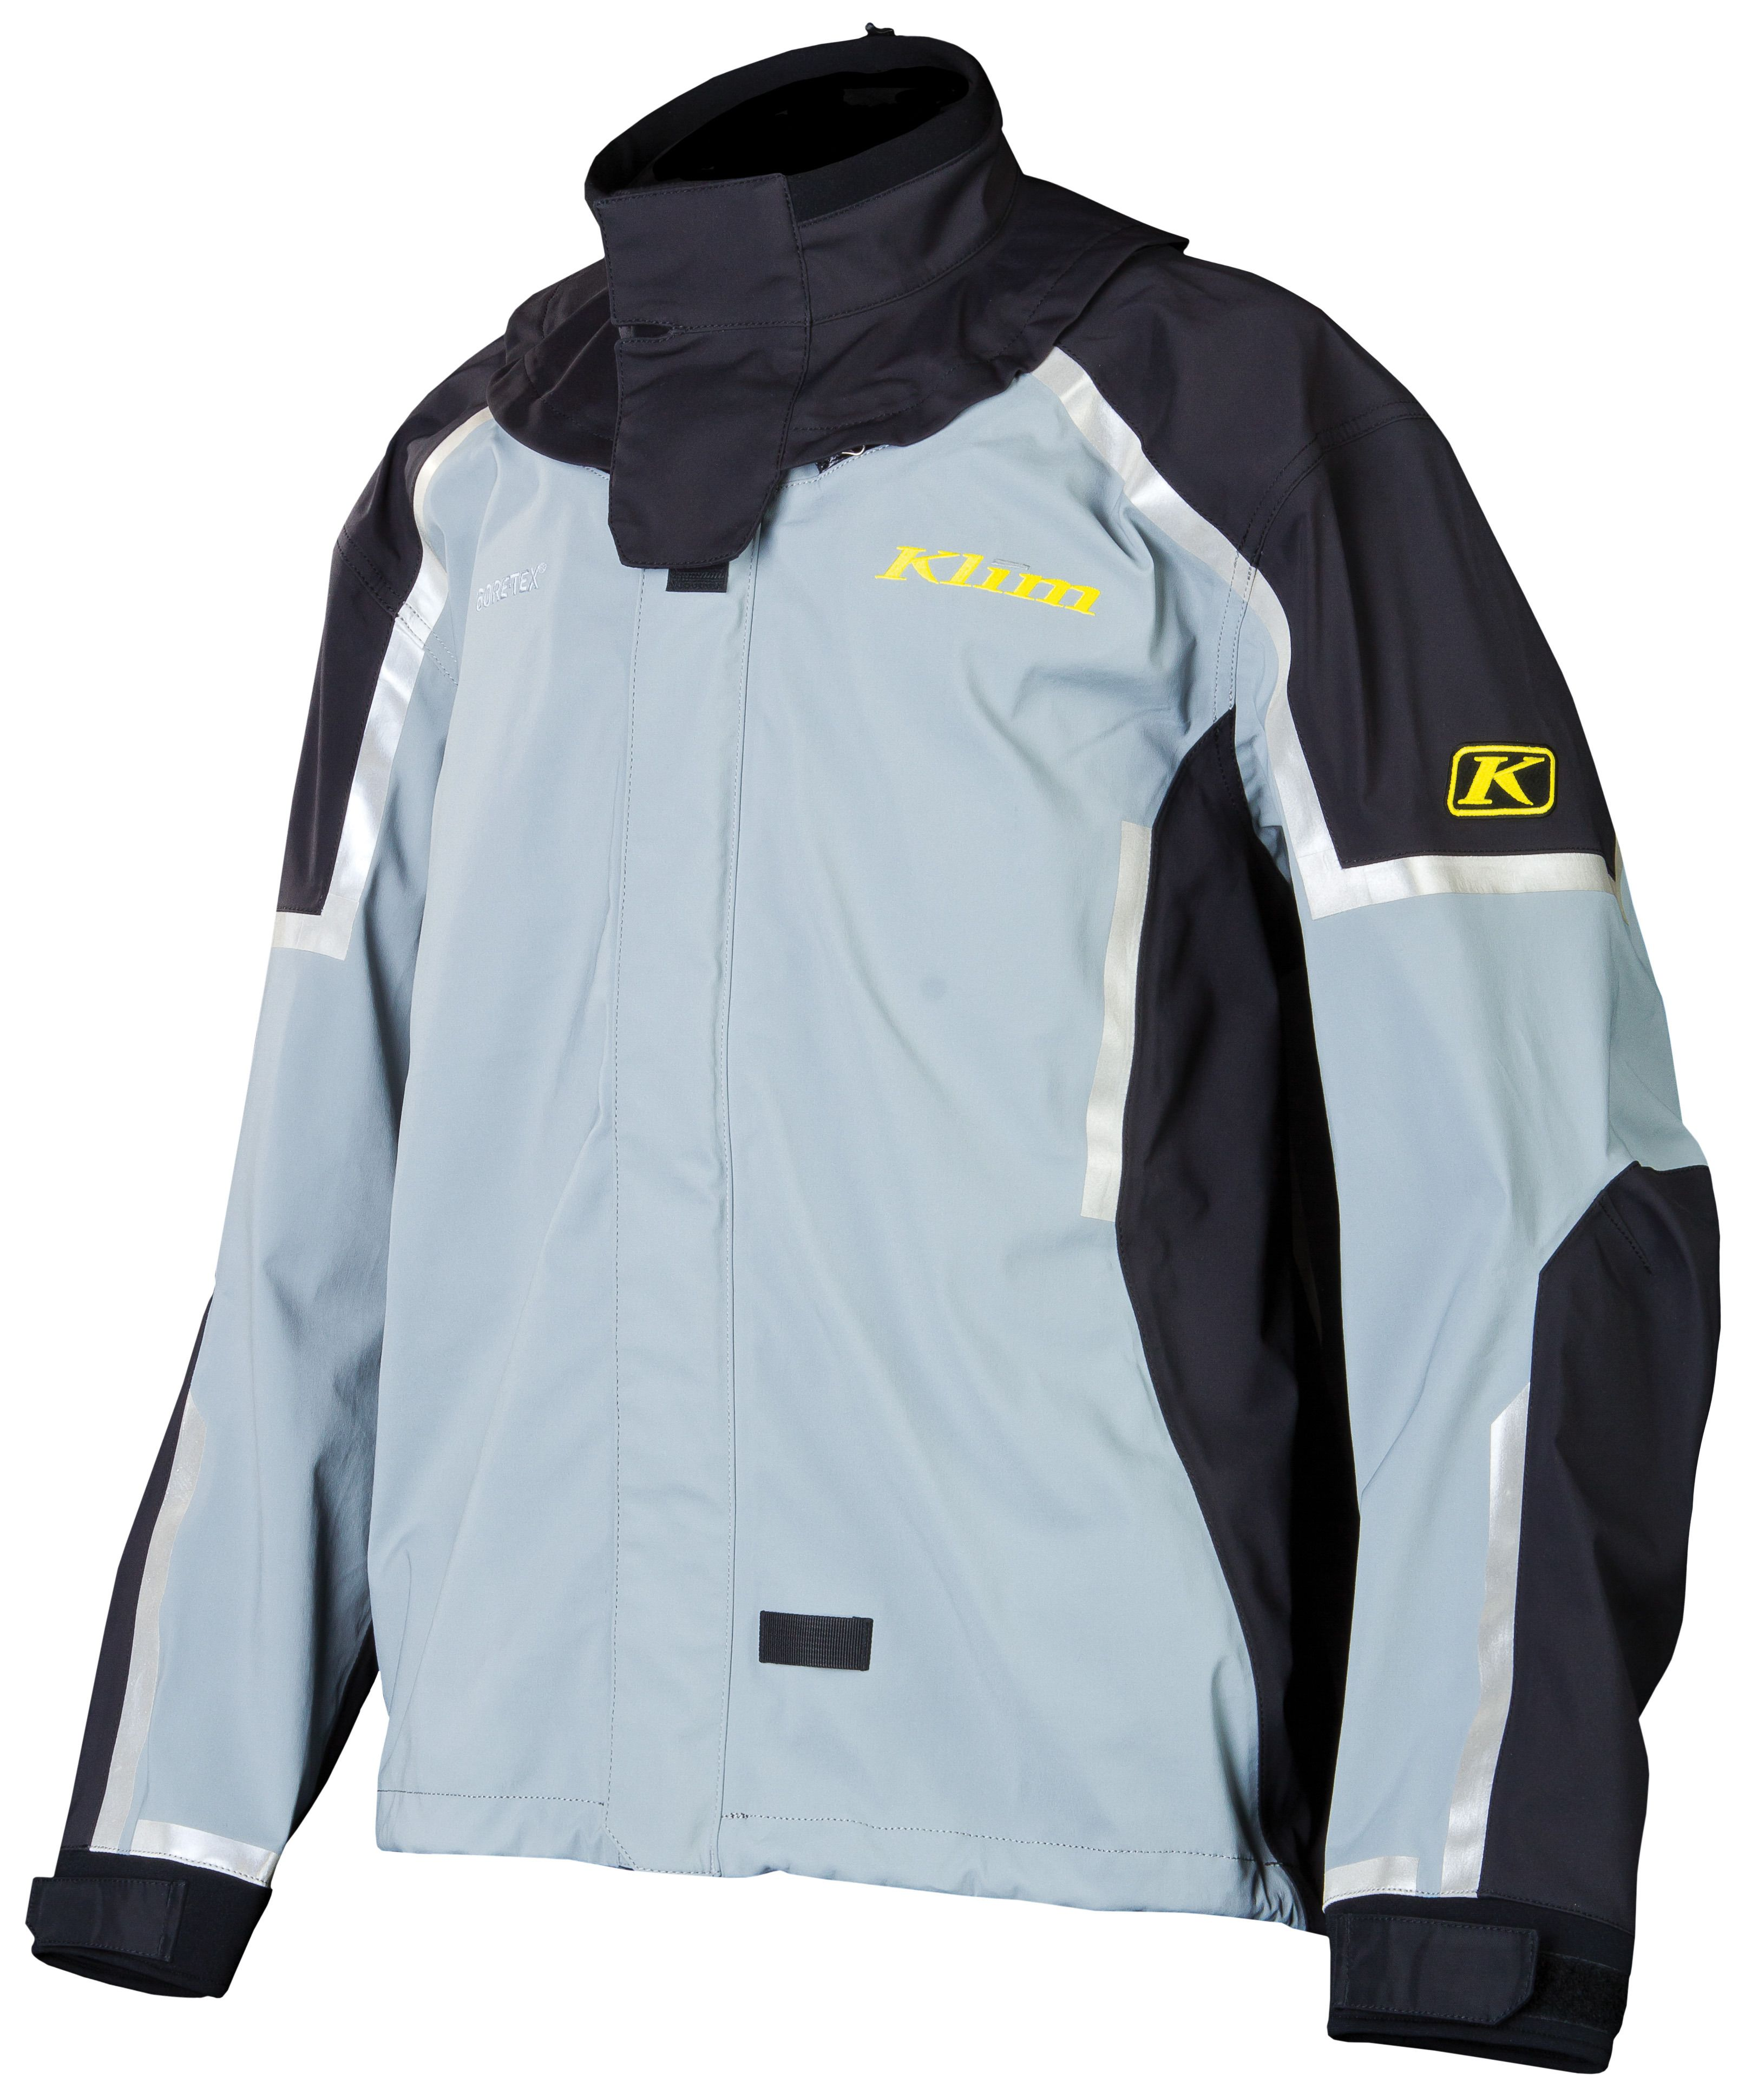 Klim Gore-Tex Over-Shell Jacket | 49% ($190.00) Off!